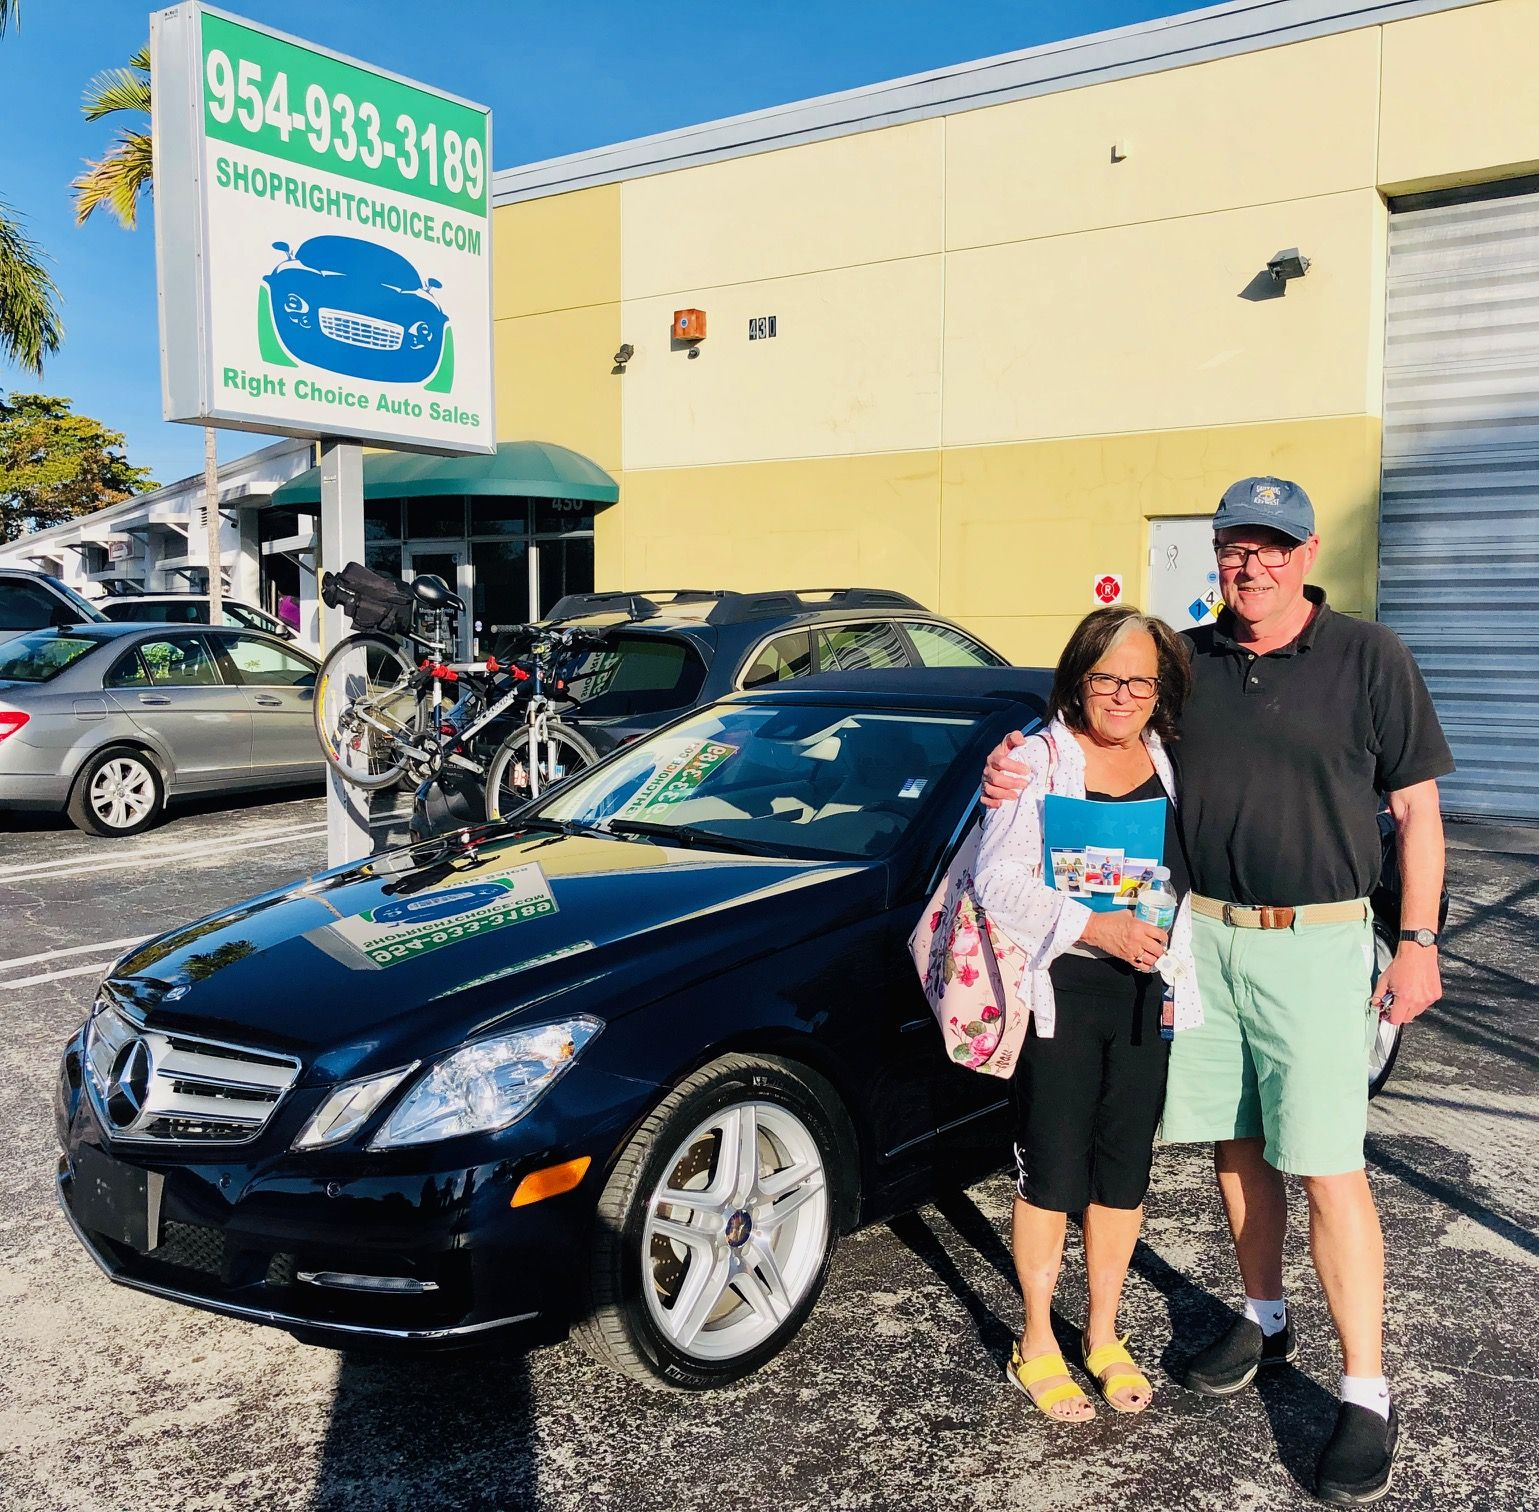 Susan And Jeff Saved 60 Of The Price Of A New Mercedes Benz E350 When They Bought This Incredible 2012 E350 Cabriolet With Pompano Beach Cars For Sale Pompano